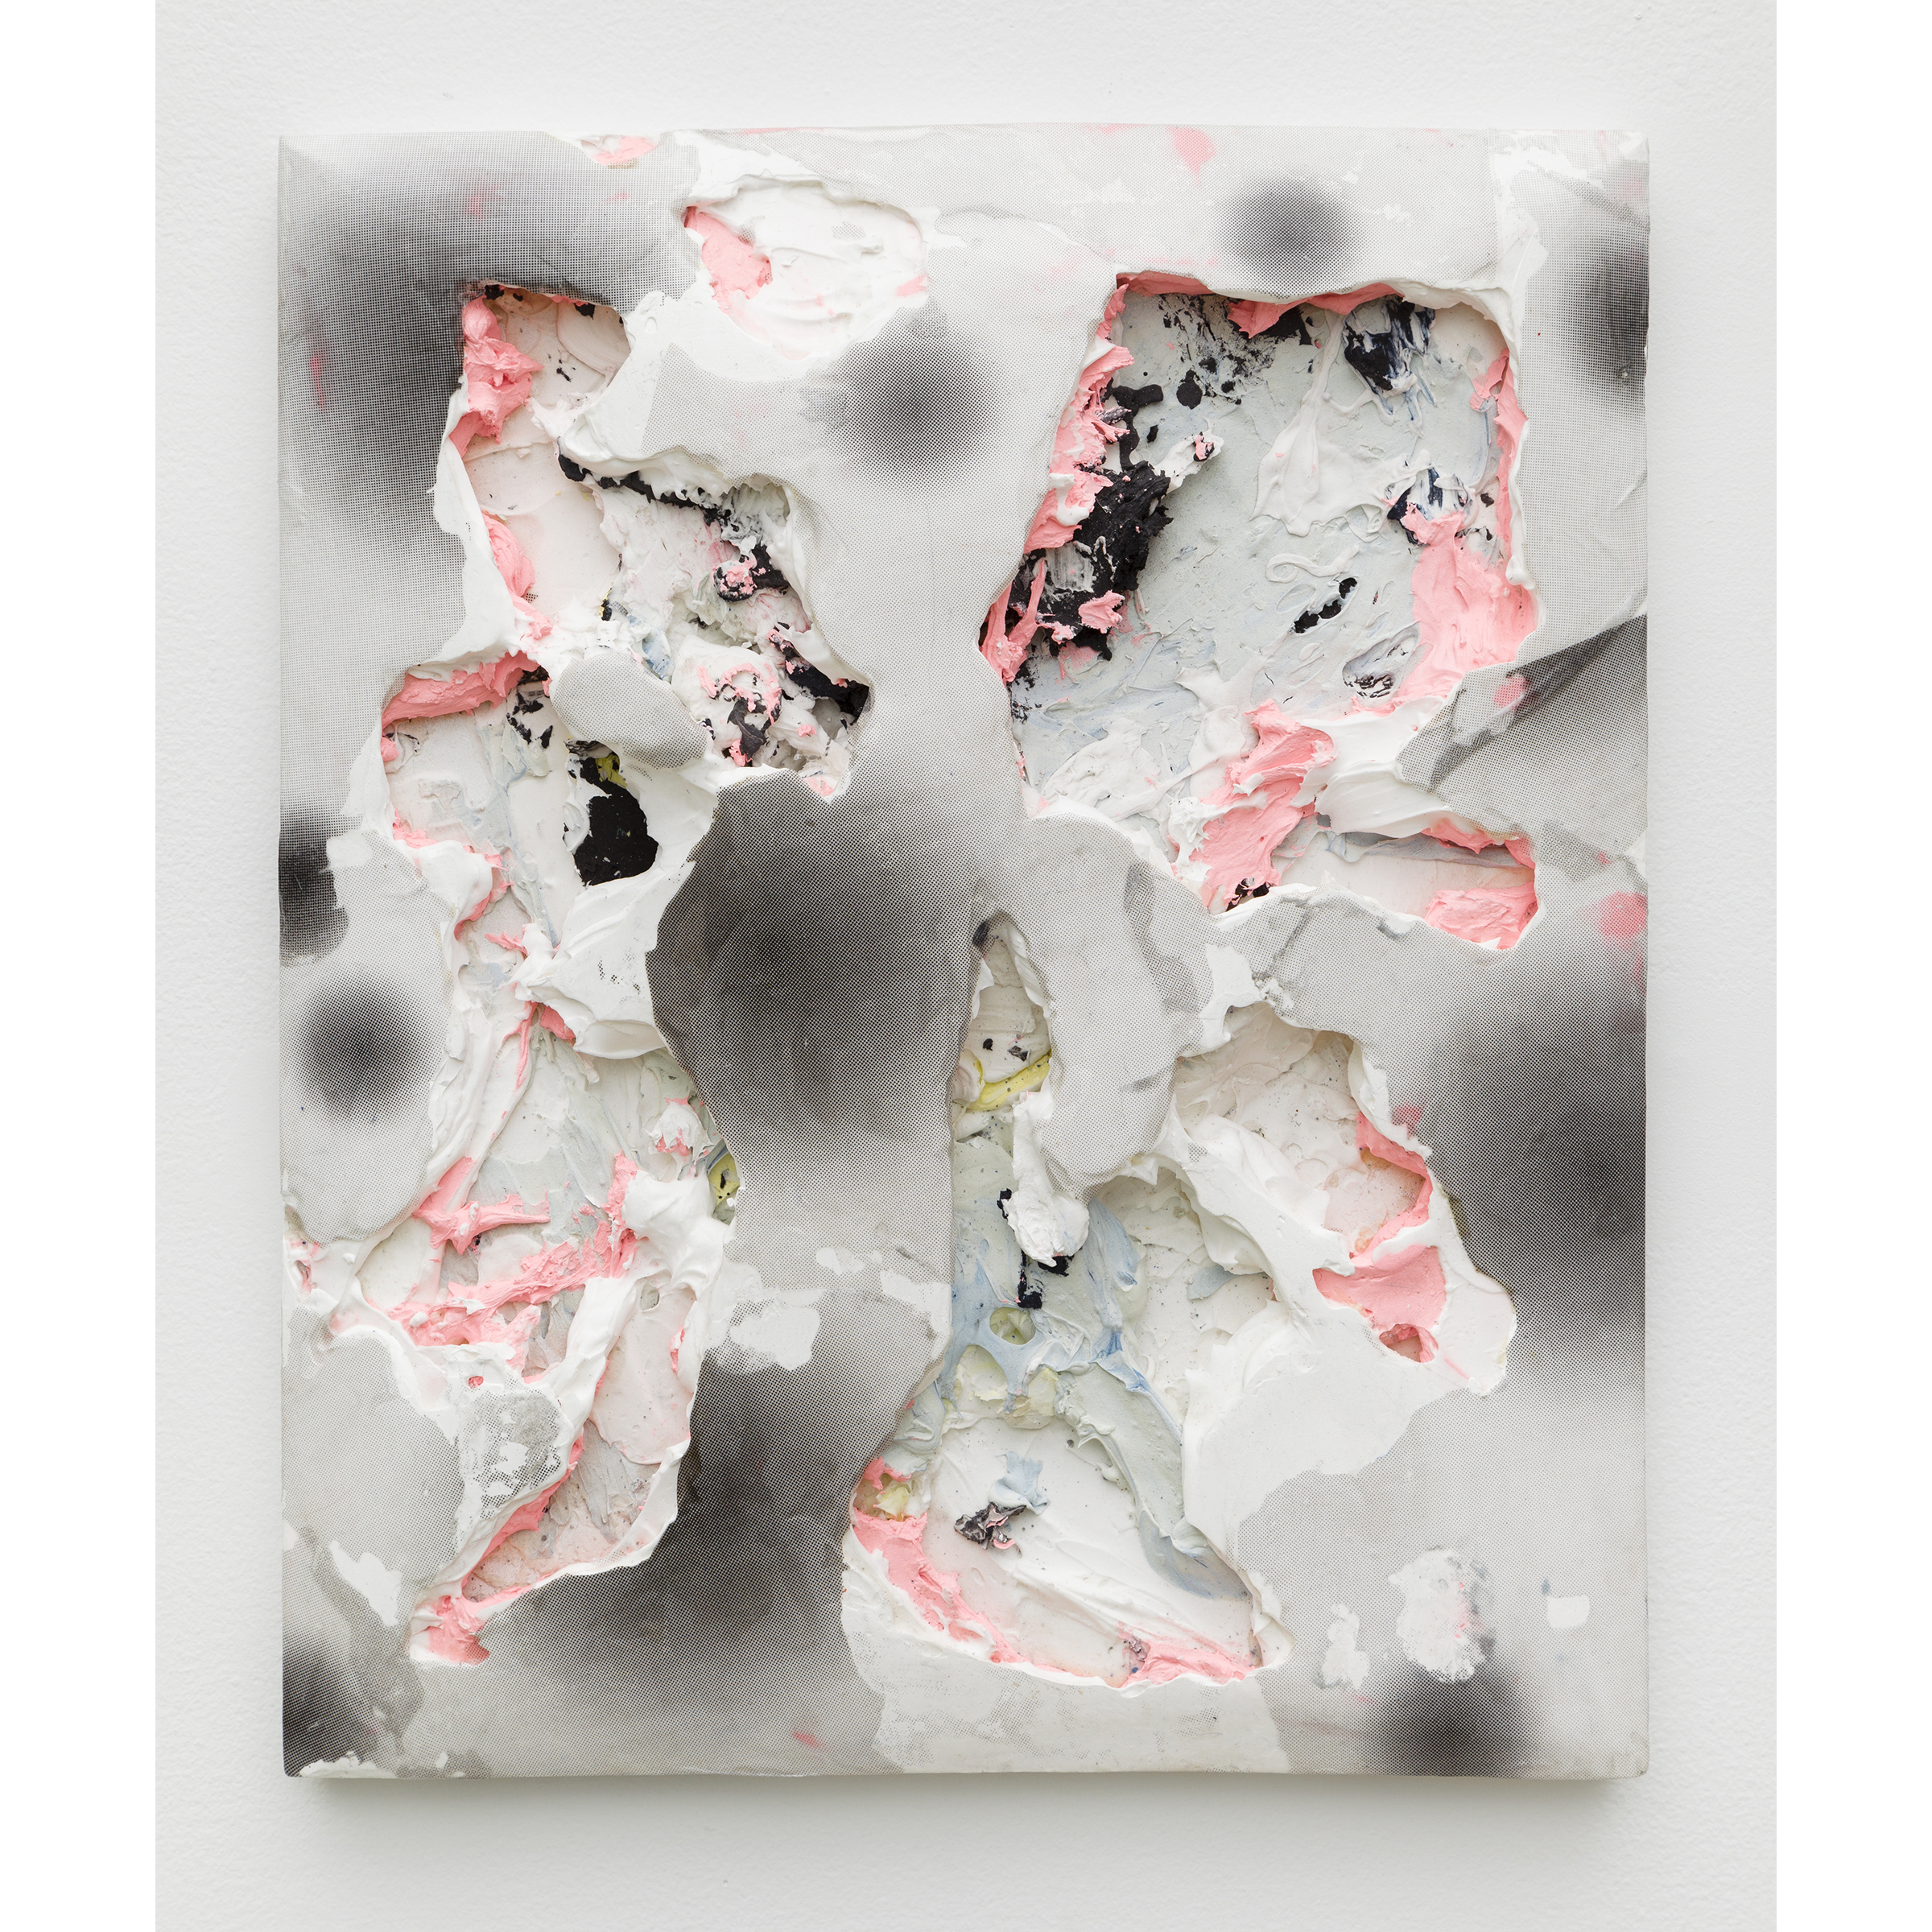 Nicolas Roggy, Untitled , 2014,primer, modeling paste, pigment,acrylic paint, print on PVC,13.7 x 17.7 x 2.3 in